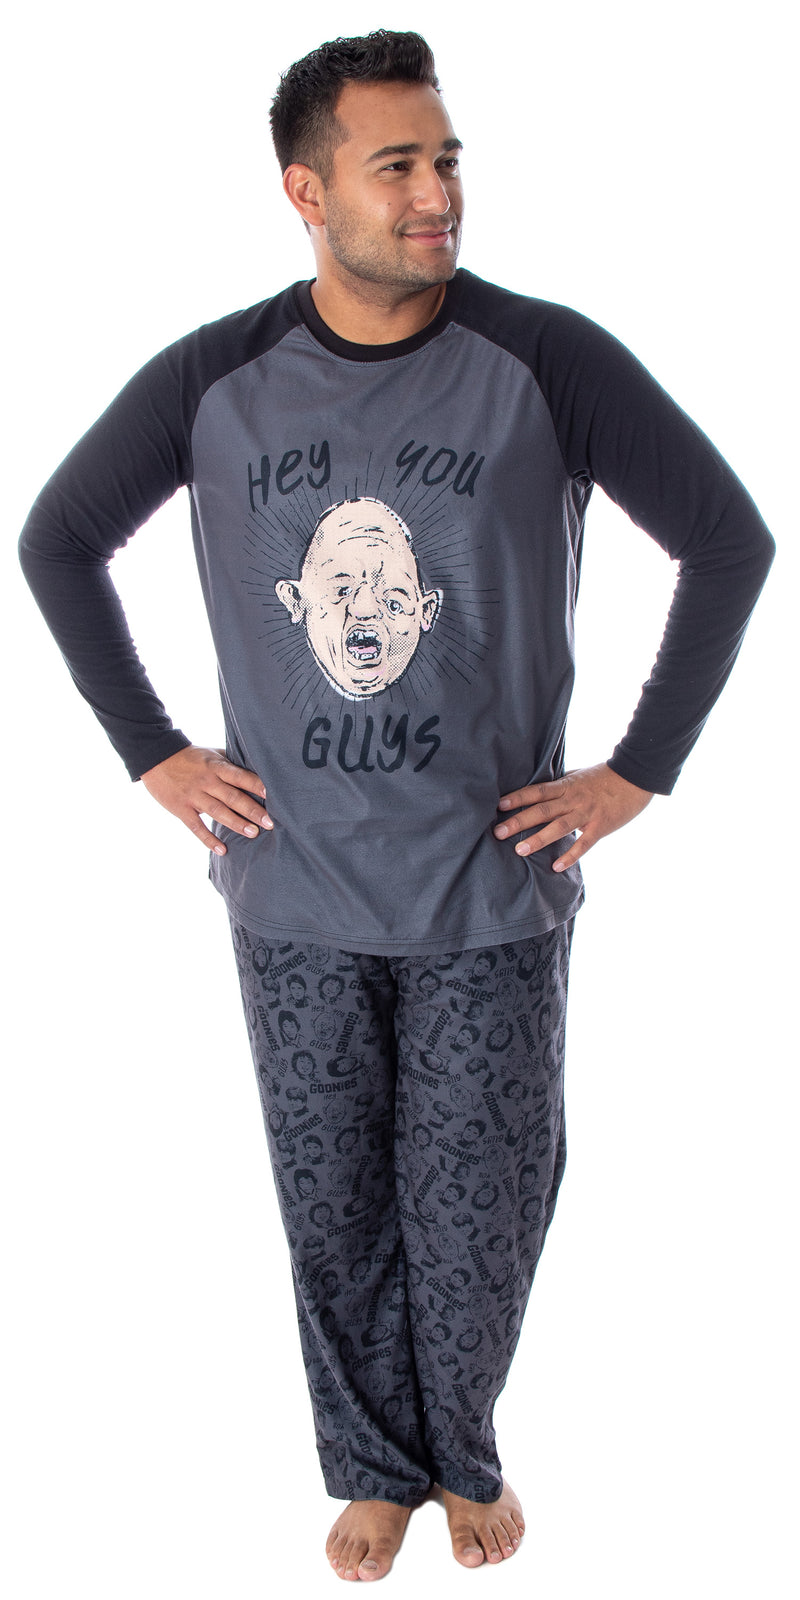 The Goonies Men's Sloth Hey You Guys Super Soft Raglan Shirt And Pants 2 Piece Pajama Set